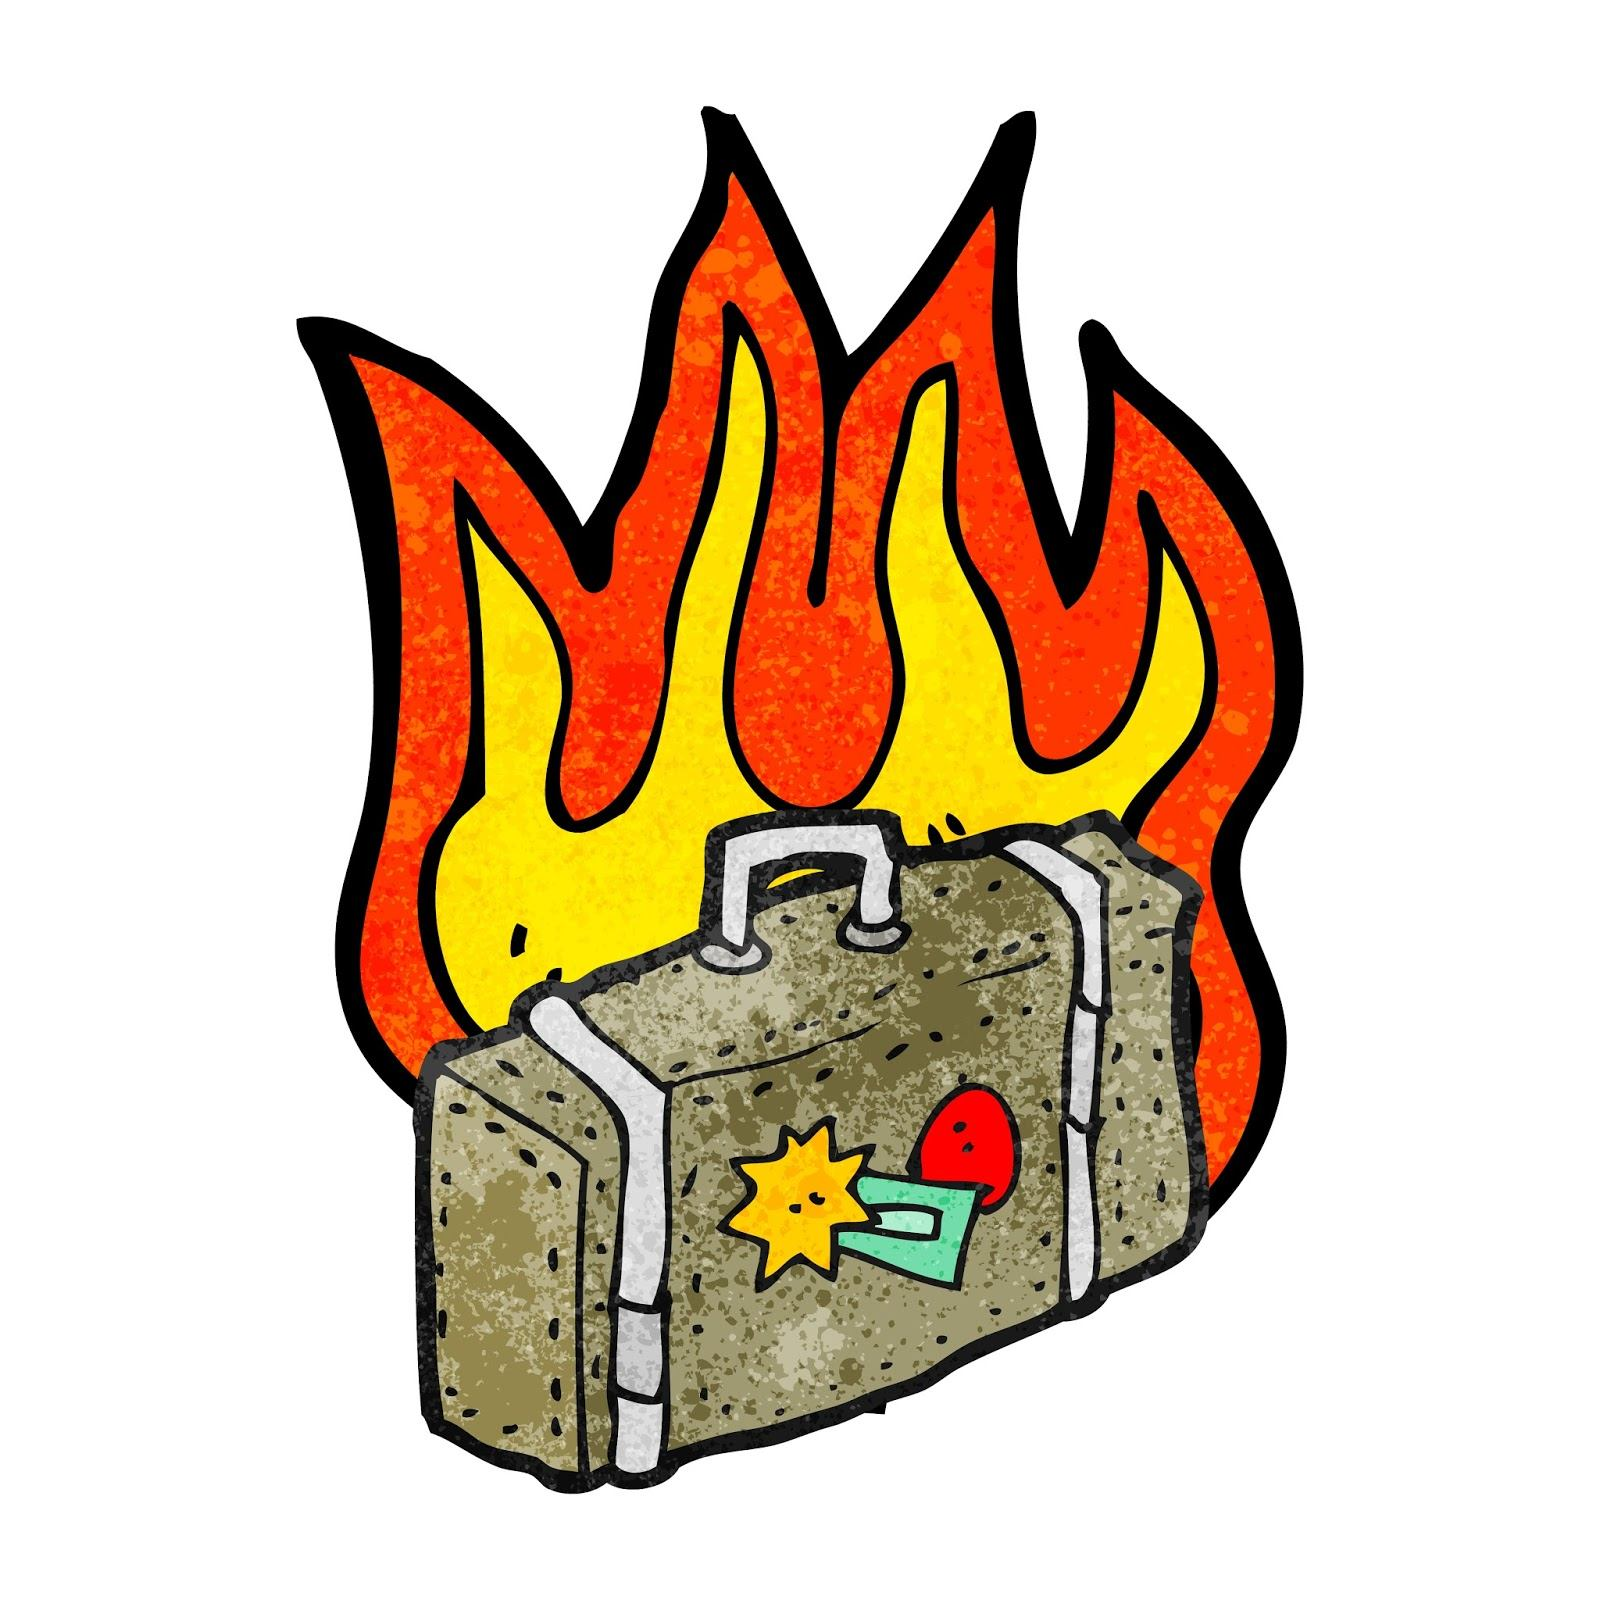 Checked bag on fire